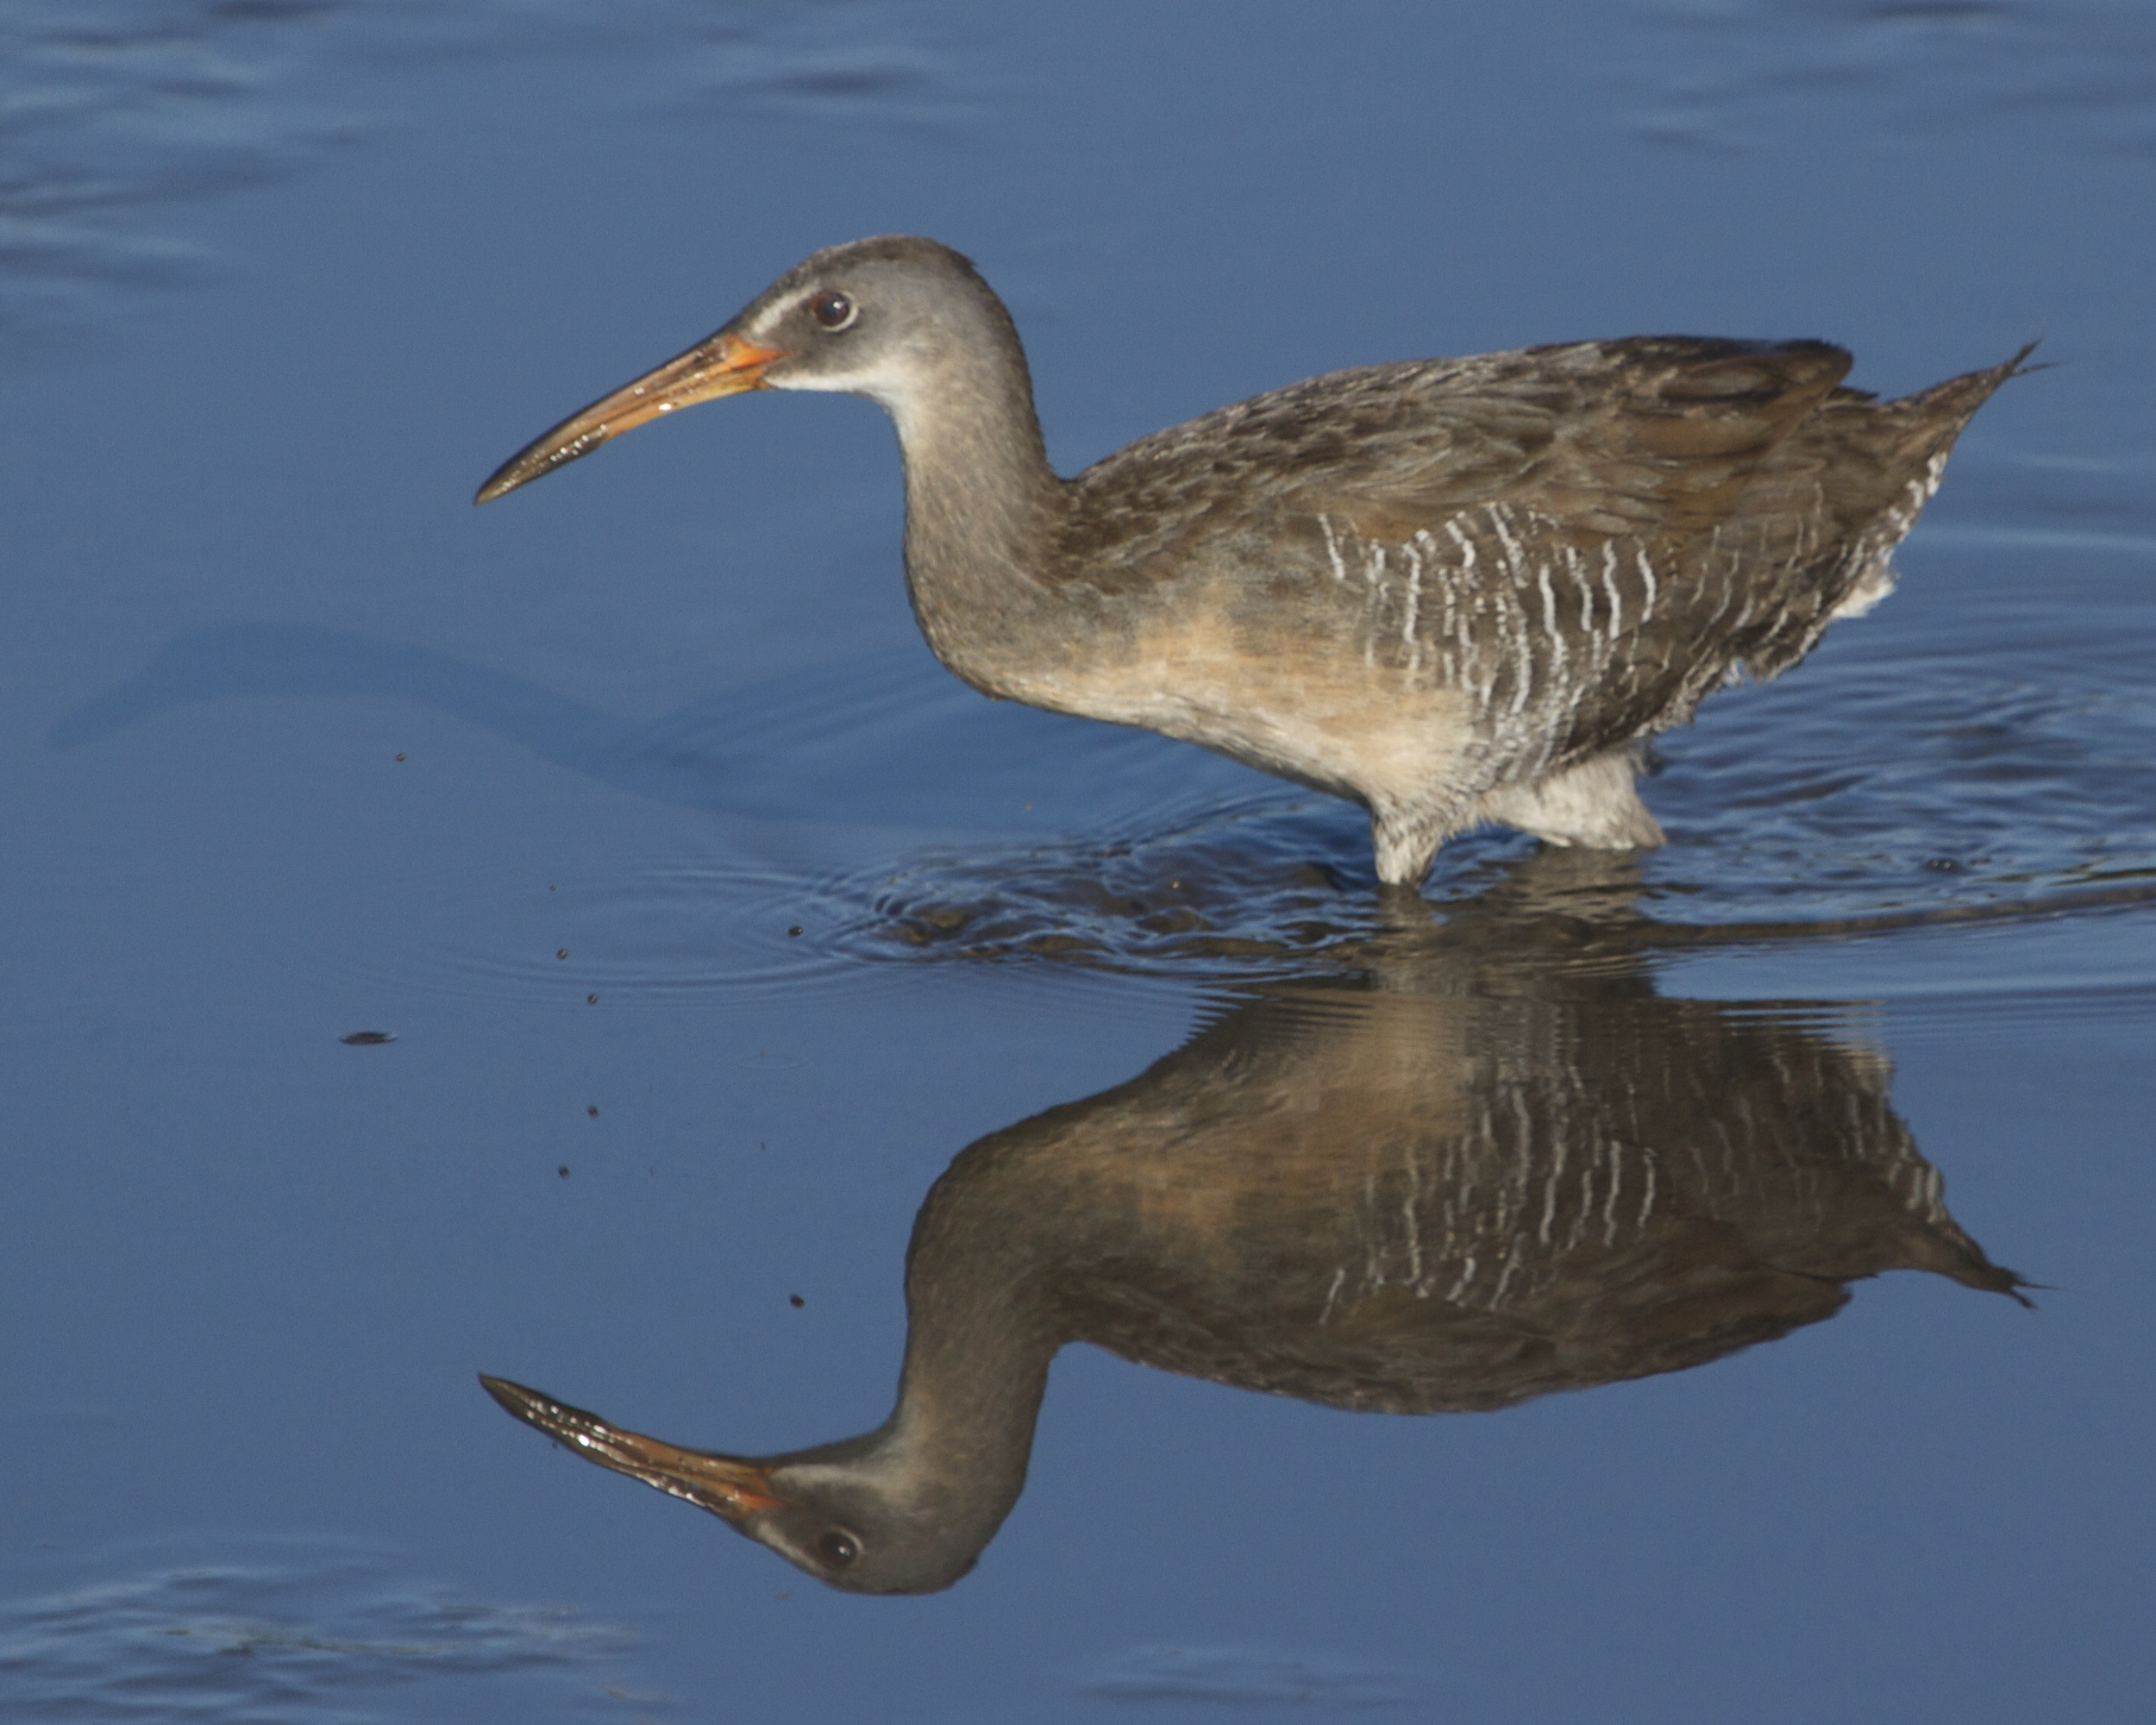 The Clapper Rail, also known as a Mud Hen is really one TOUGH MUDDER too!